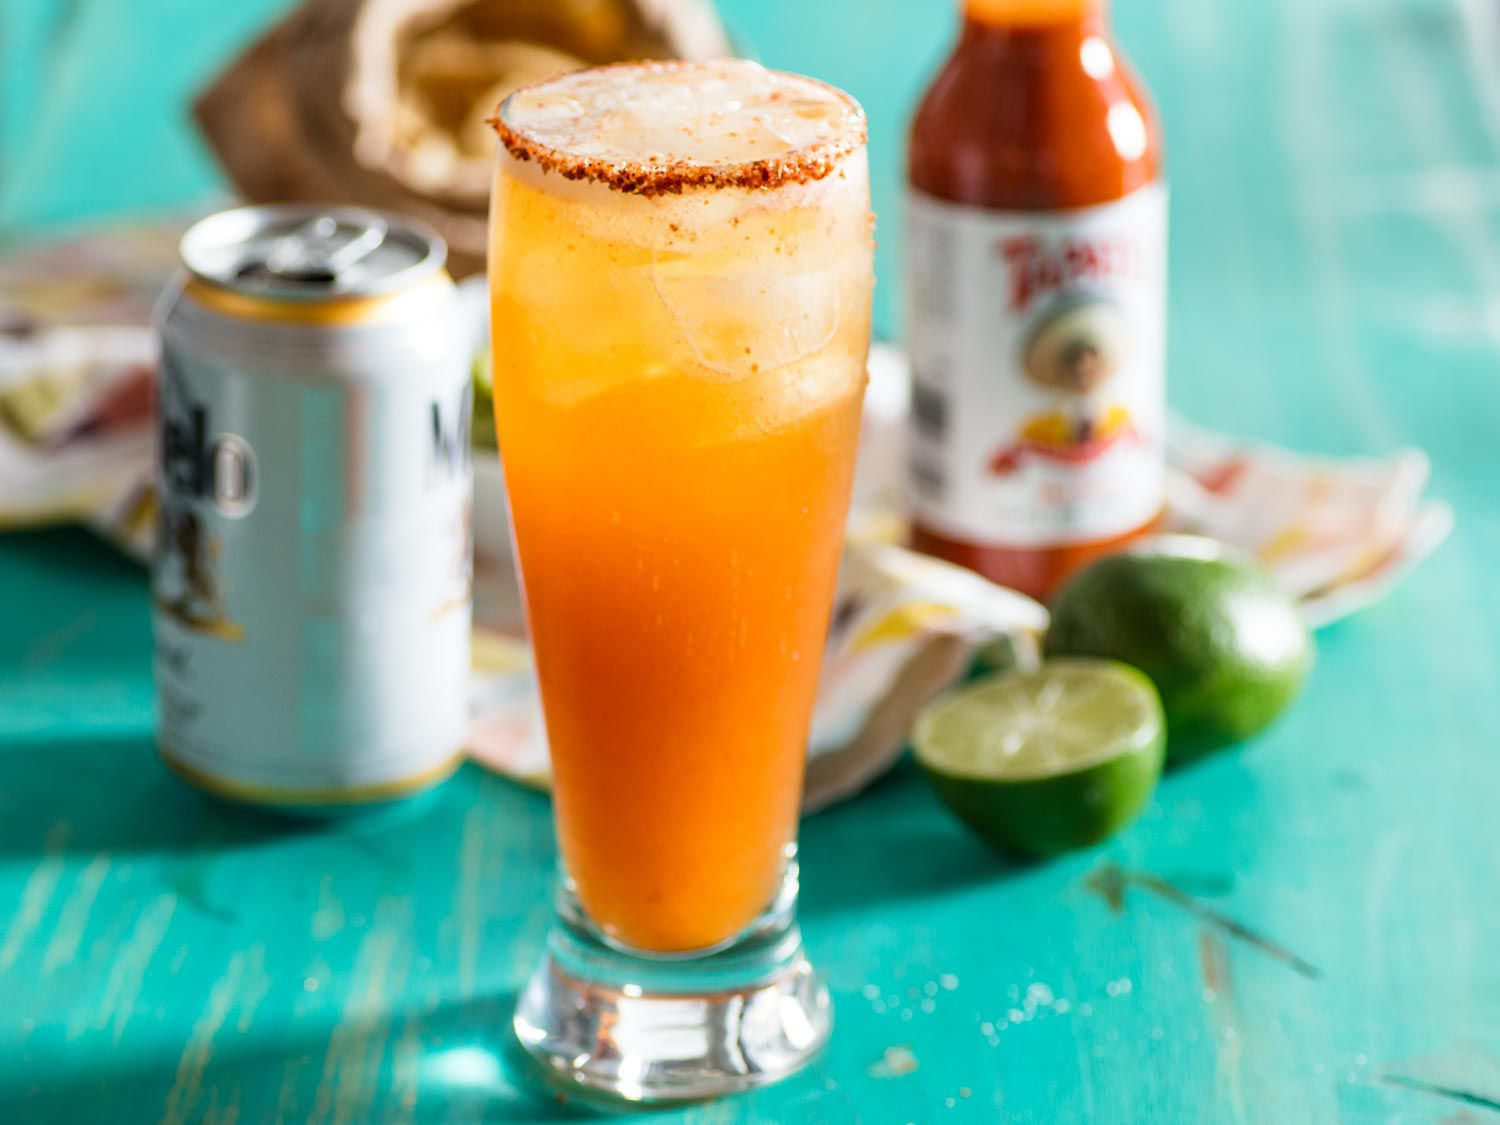 A michelada (Mexican beer, lime, and chili cocktail) in a chili-rimmed glass